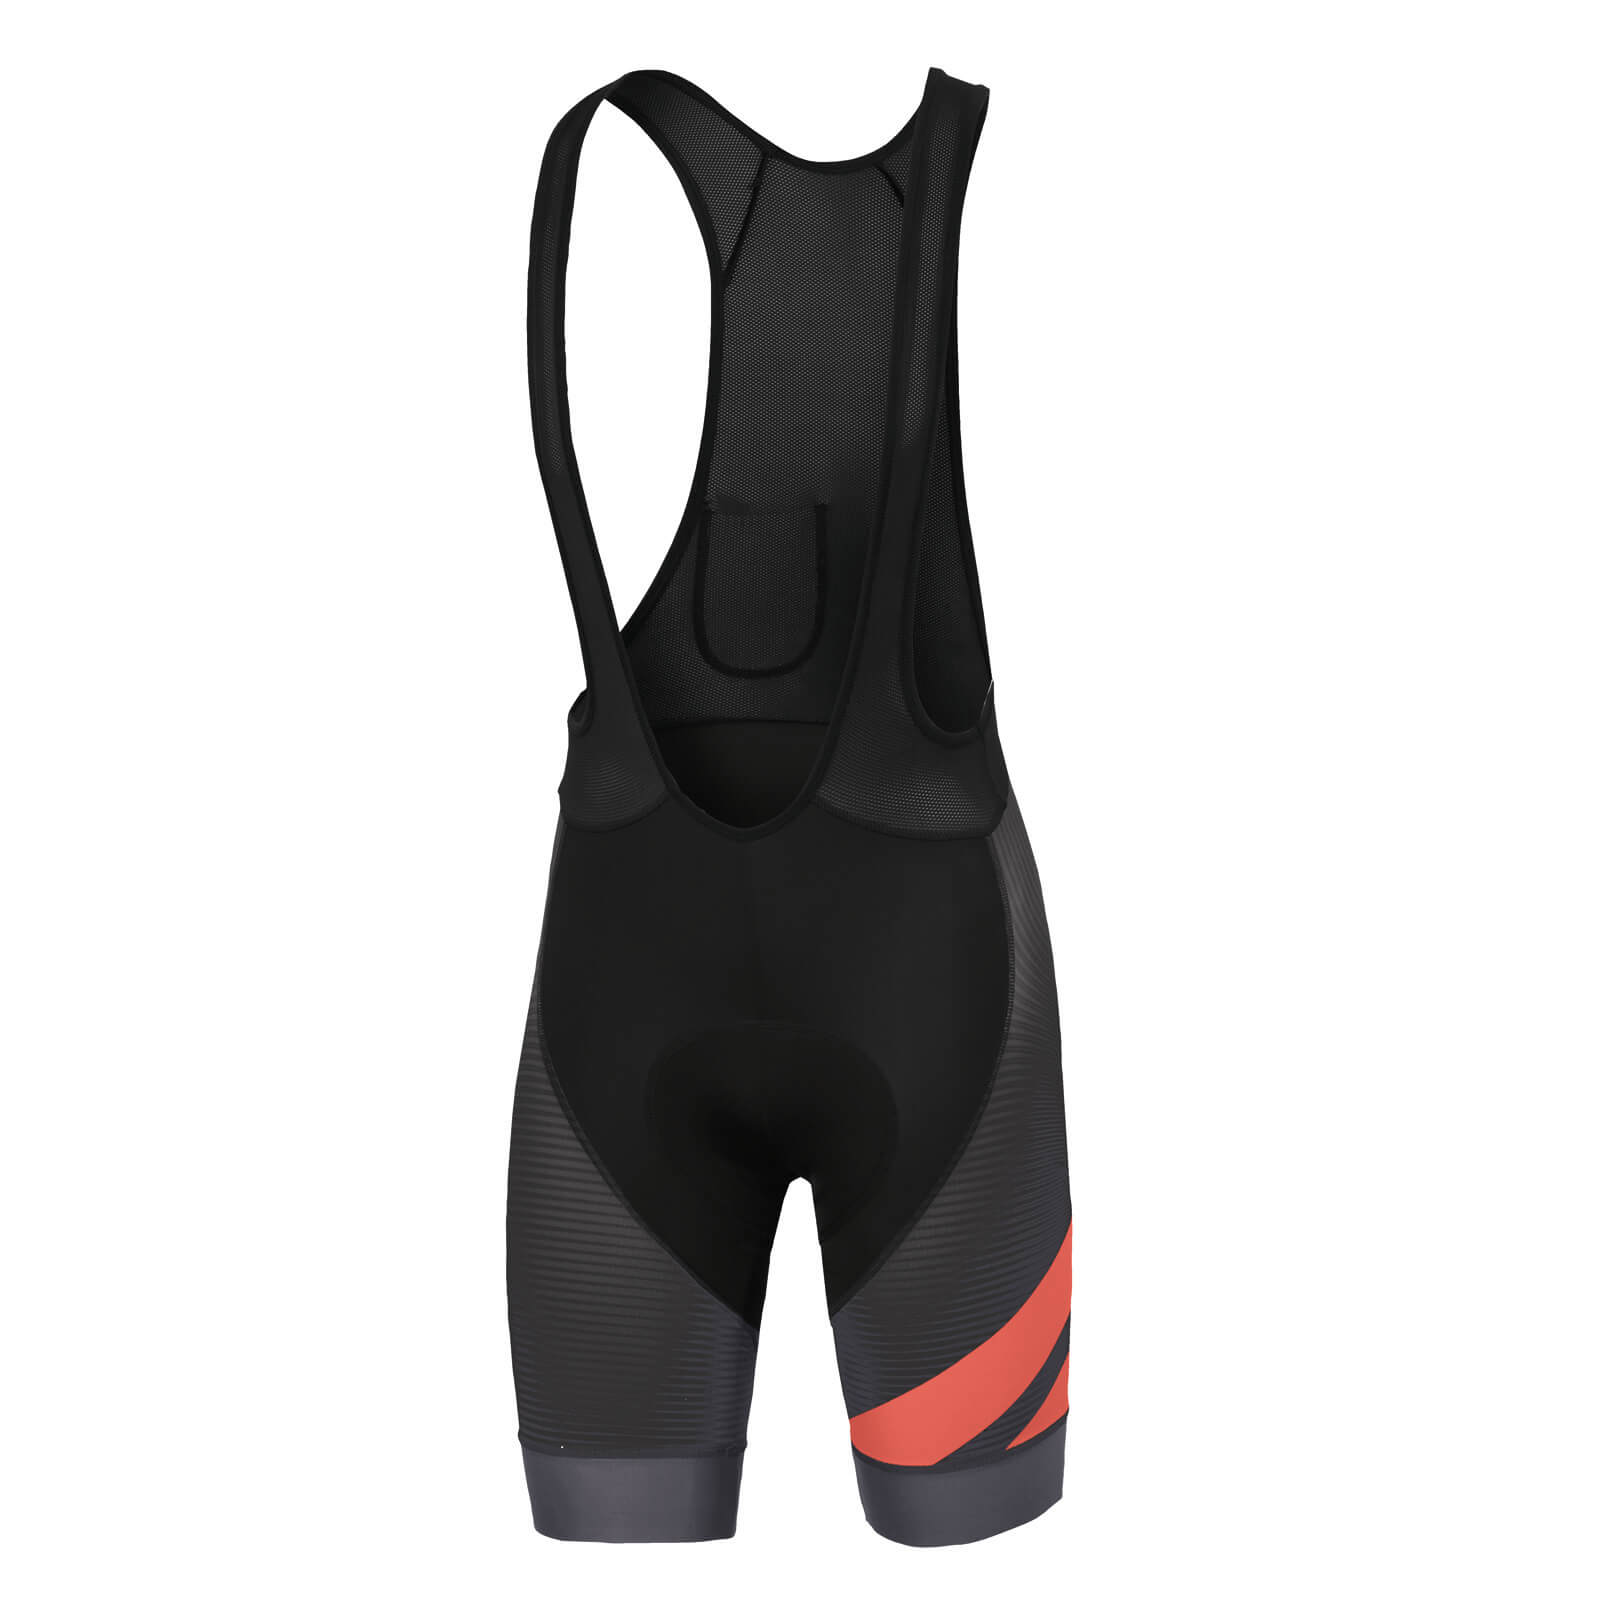 Sportful BodyFit Team Bib Shorts - Black/Coral Fluo